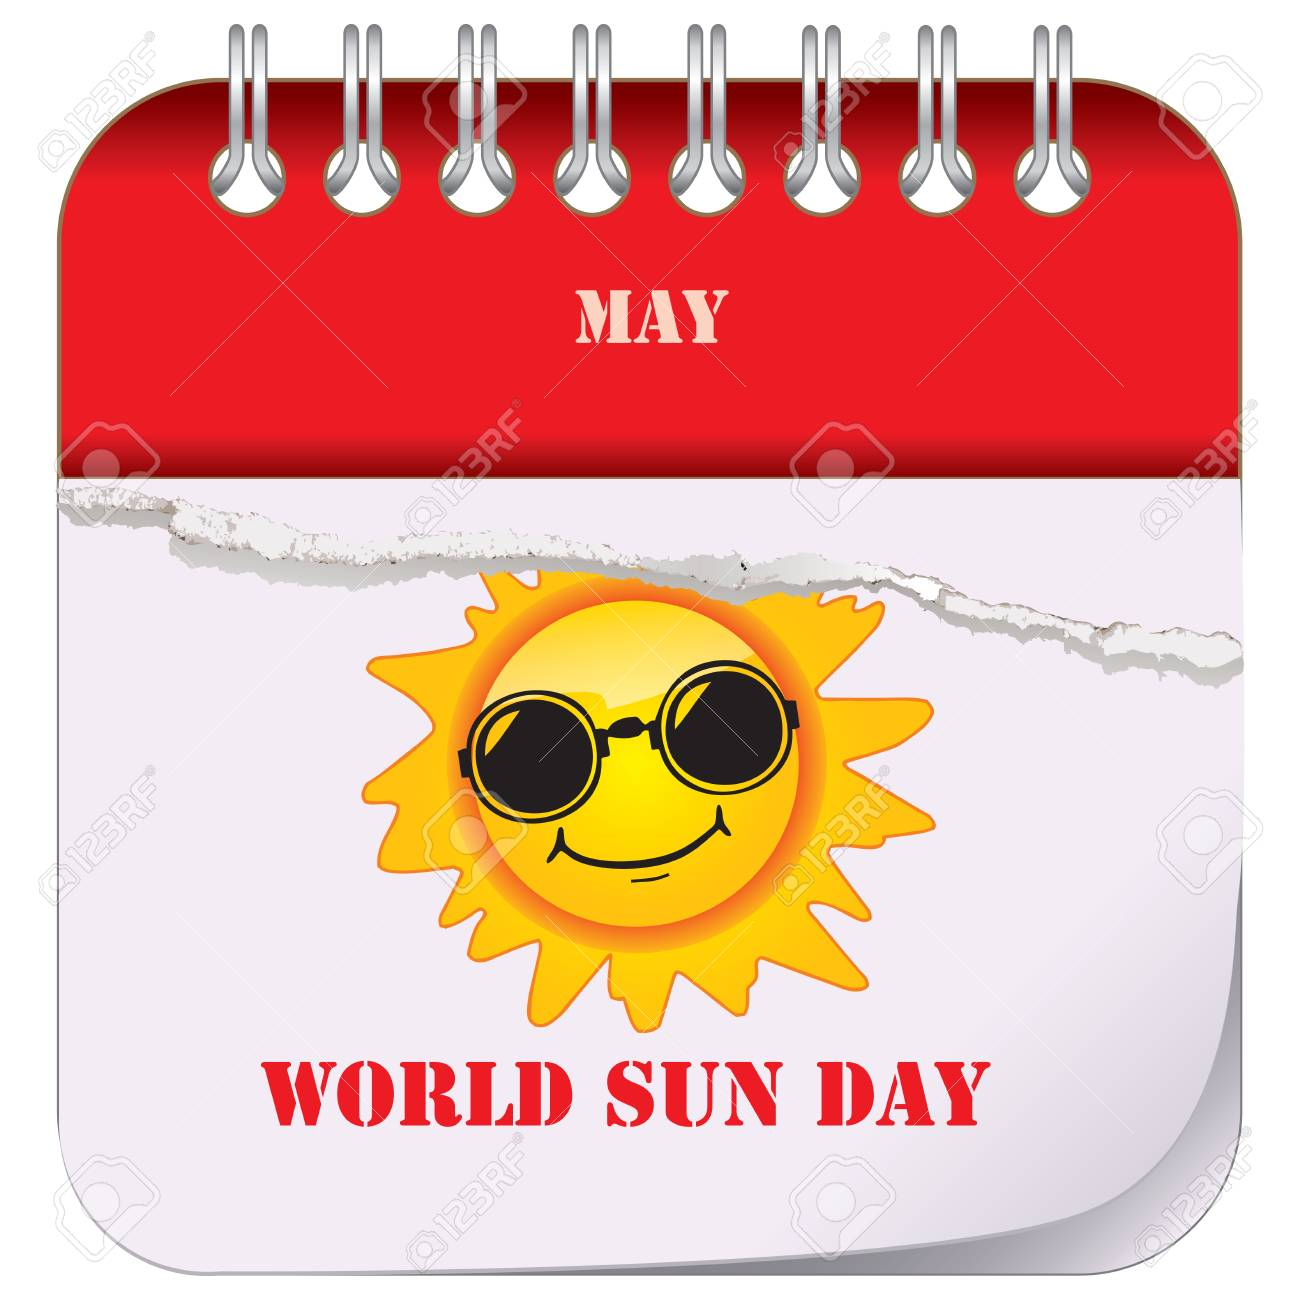 World Sun Day In May Calendar Of Holiday Dates With Sun In